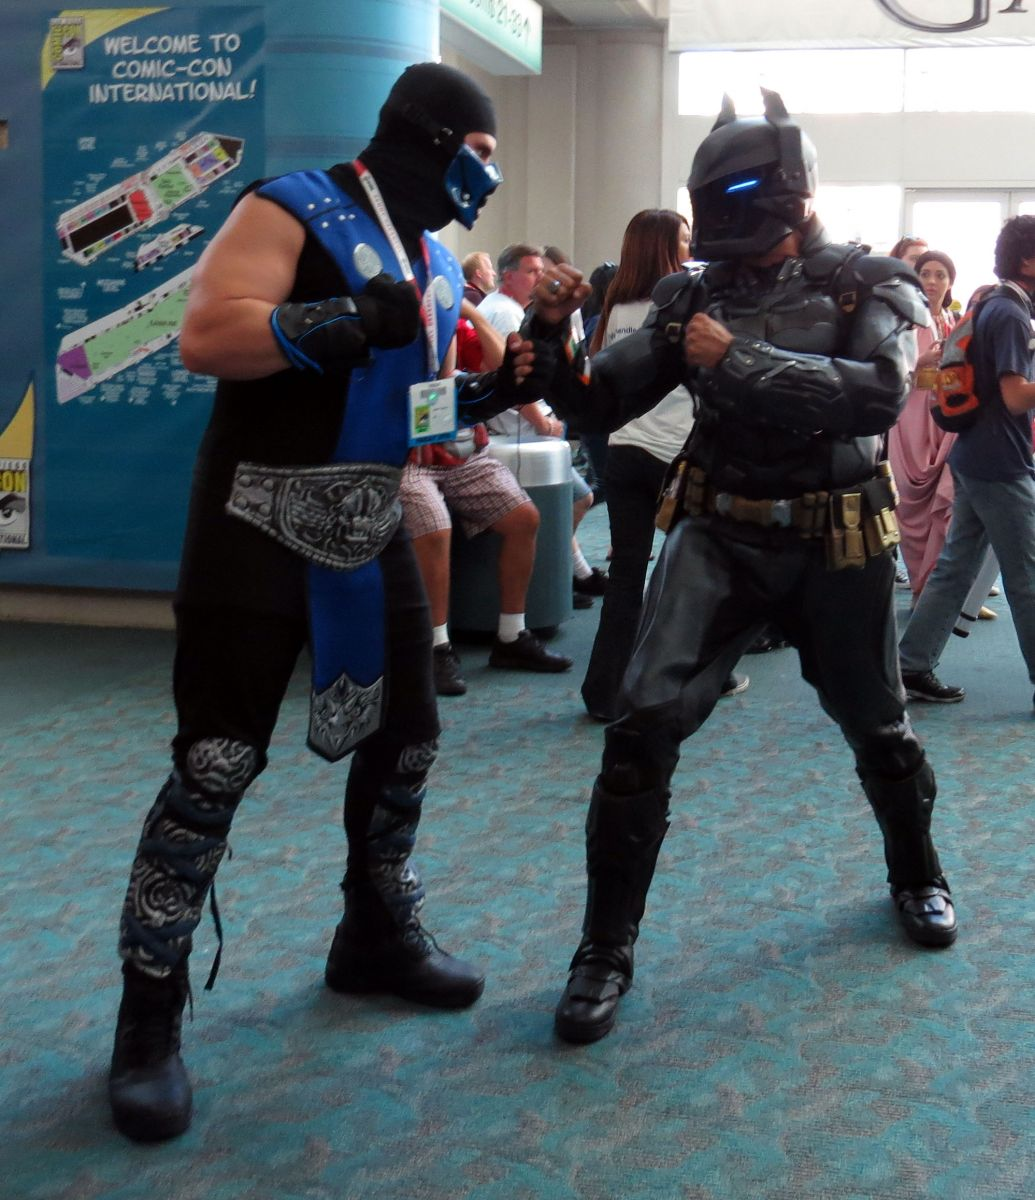 sdcc2015-07-10-cosplay-04